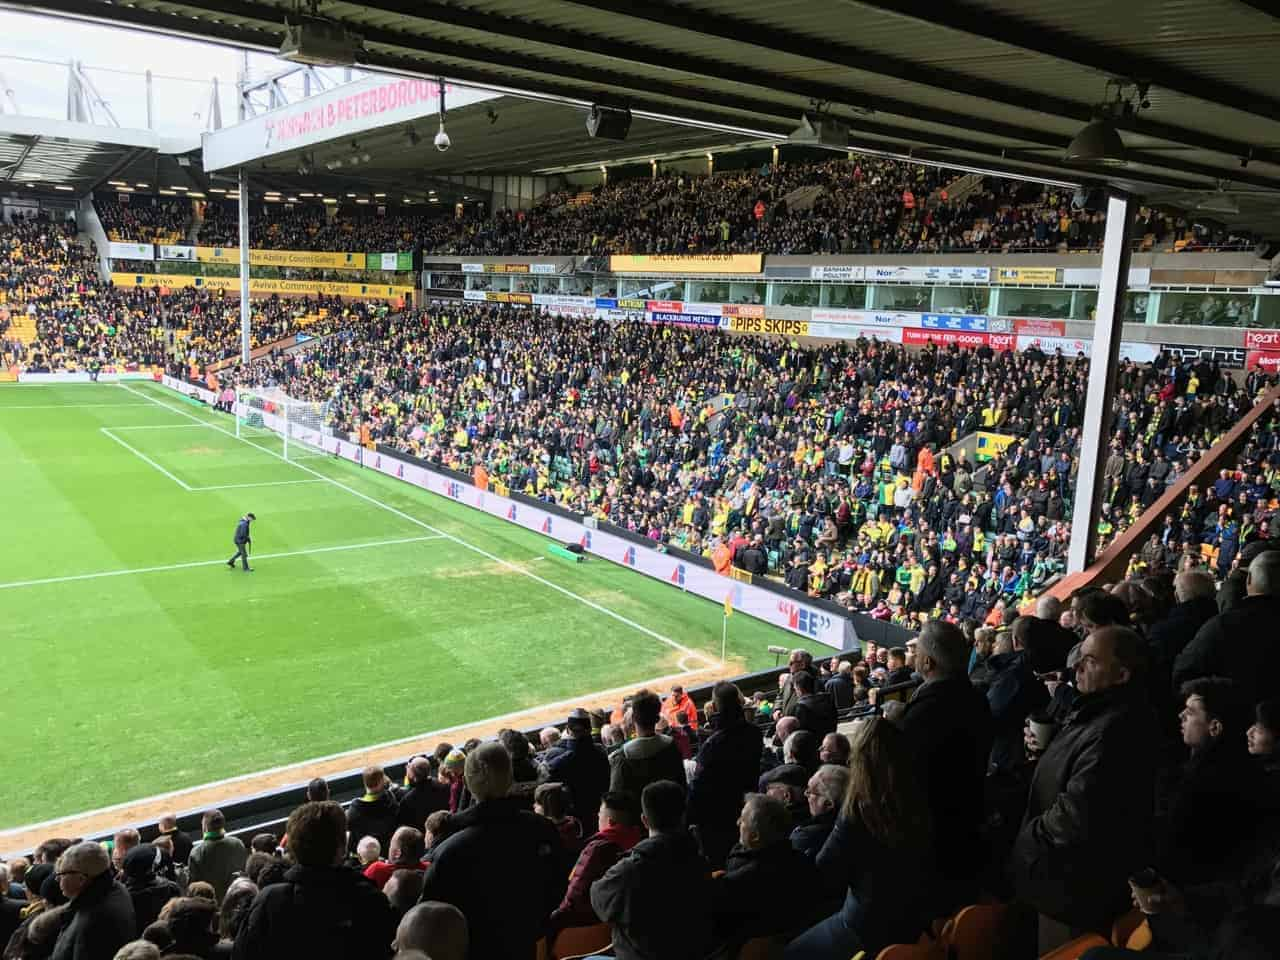 Norwich City fans excited for promotion to Premier League